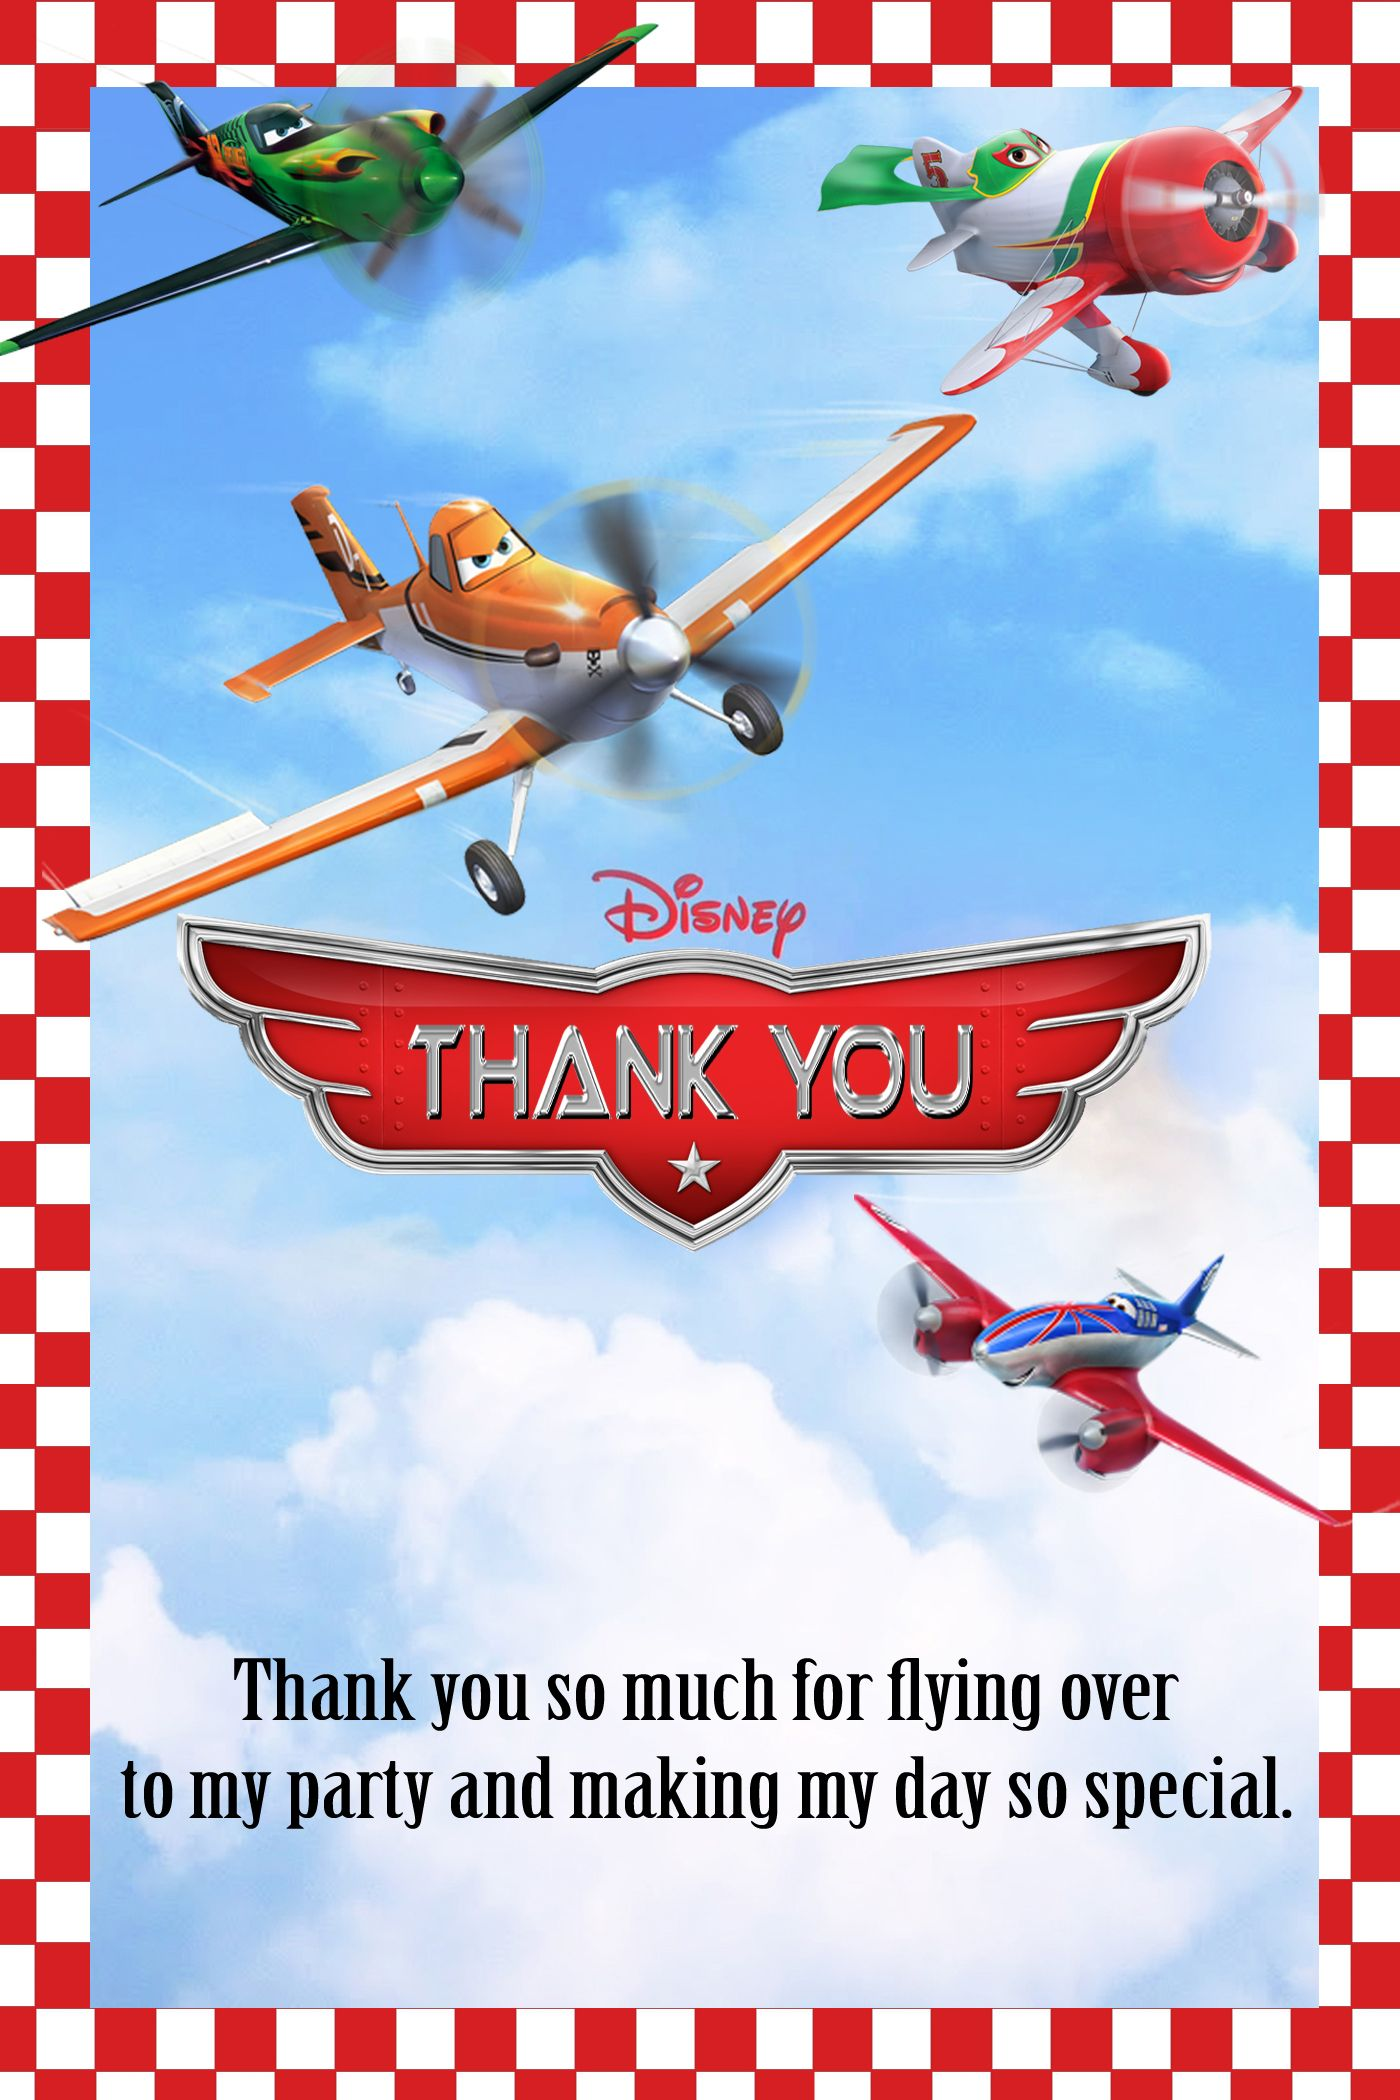 Disney Planes Birthday Thank You Card $3.99 | Disney Planes Fire and ...